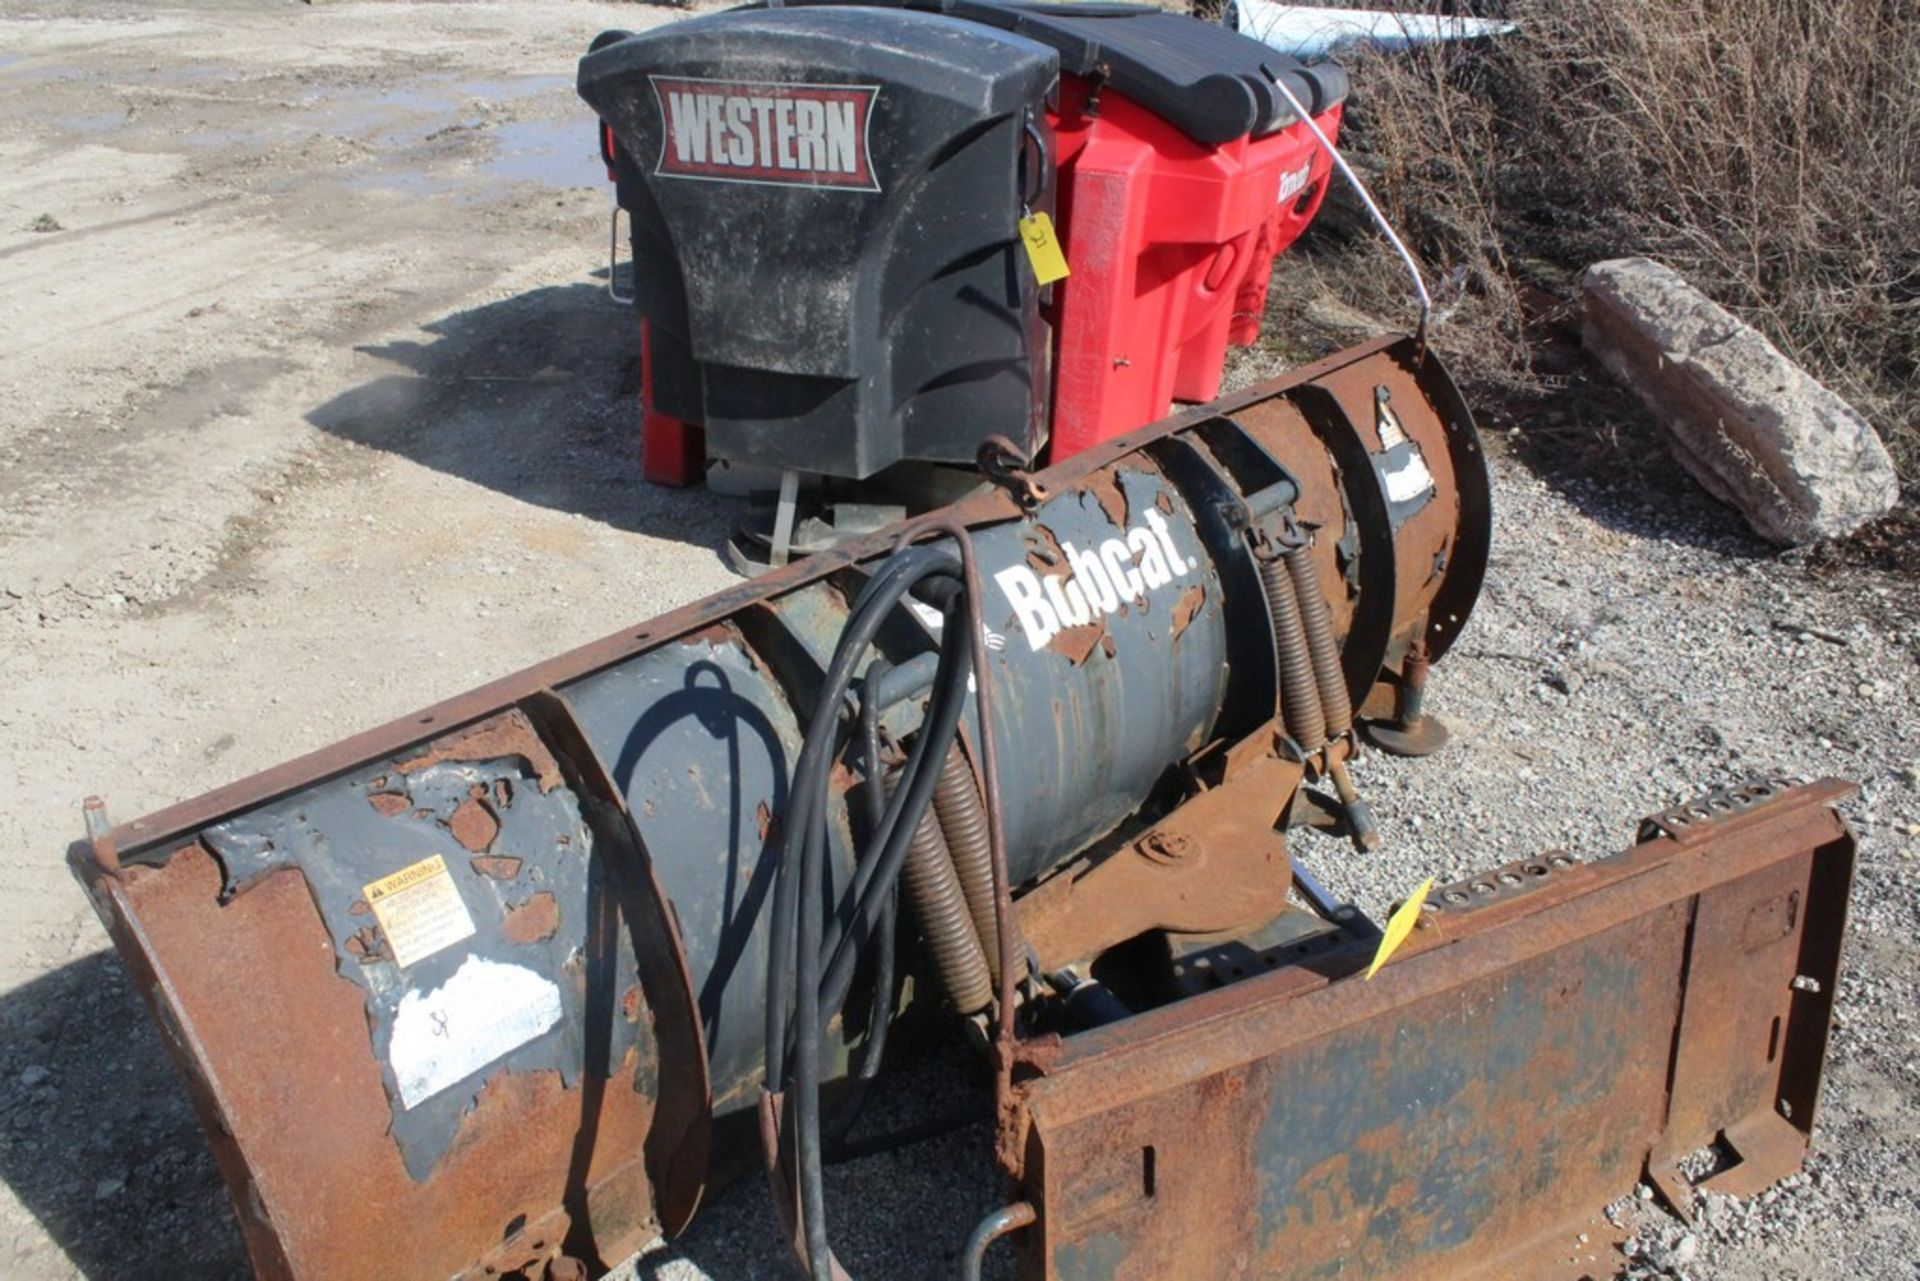 2007 BOBCAST 96-IN. MODEL 96 SNOWBLADE HYDRAULIC SNOW PLOW ATTACHMENT S/N: 683803630, 96-IN. - Image 3 of 4